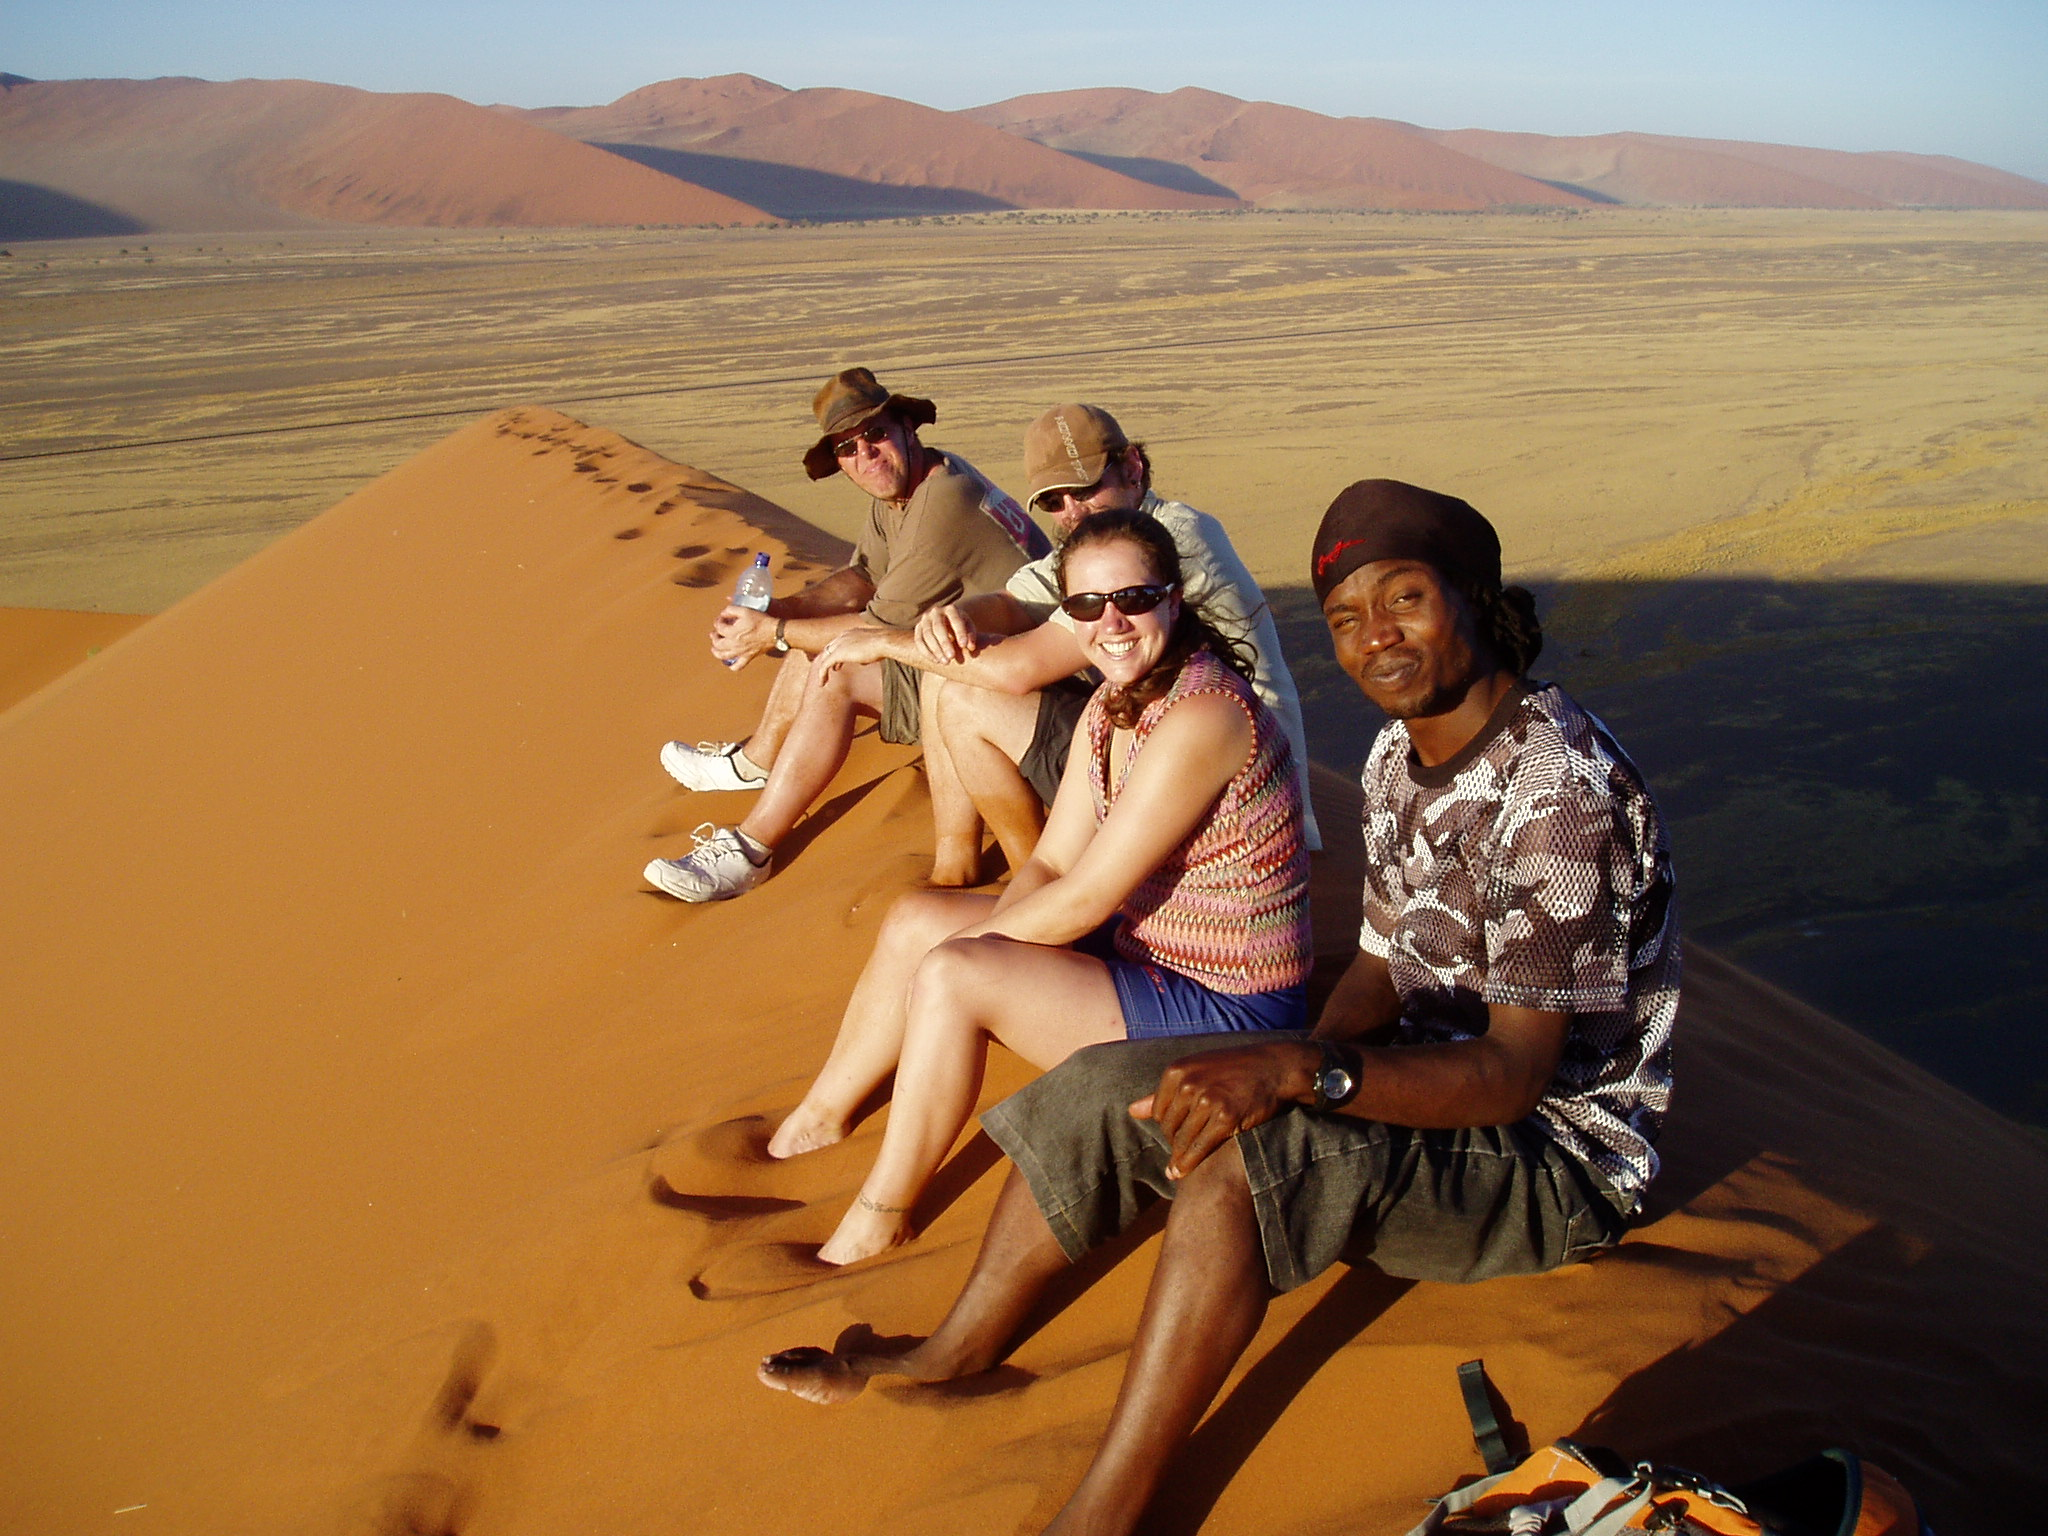 Windhoek Overland Tour | Namibian Explorer Safari Tour from Cape Town to Windhoek